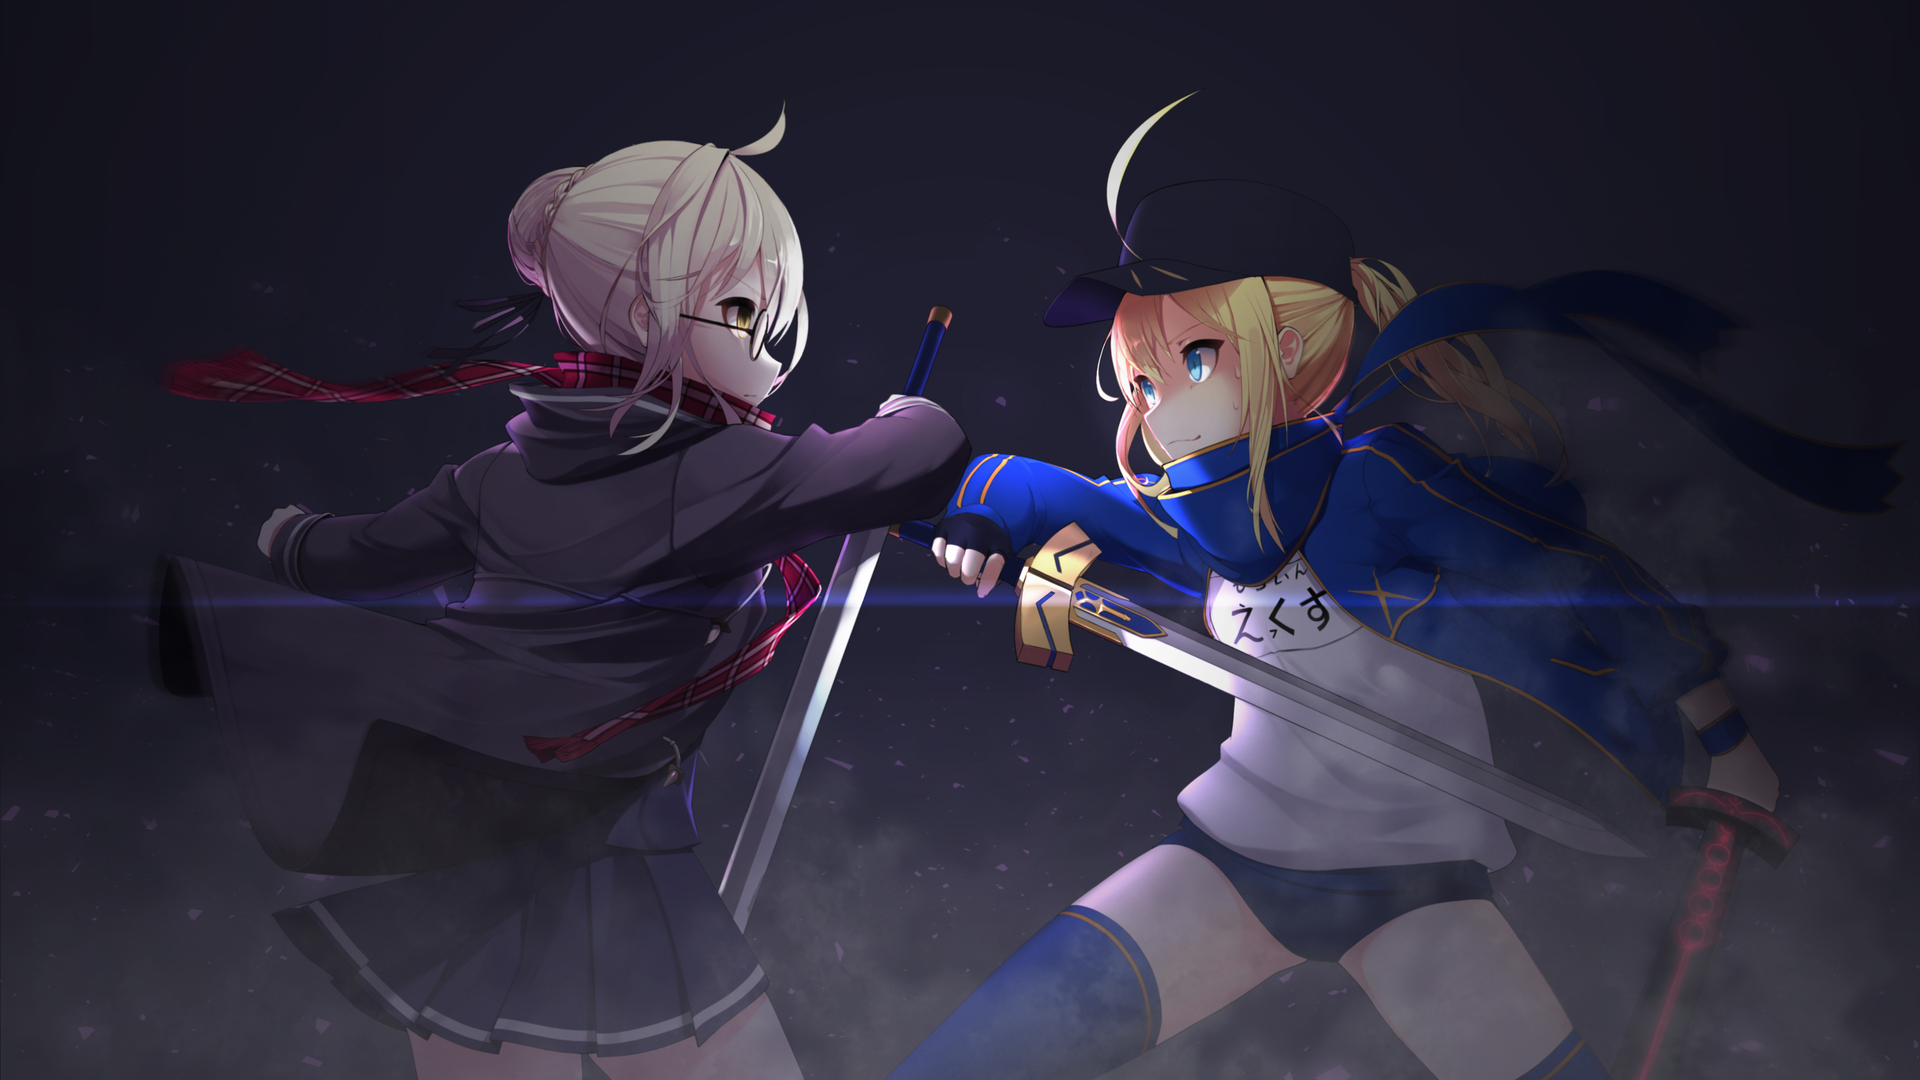 1920x1080 Heroine X And Saber Anime Fate Grand Order Laptop Full Hd